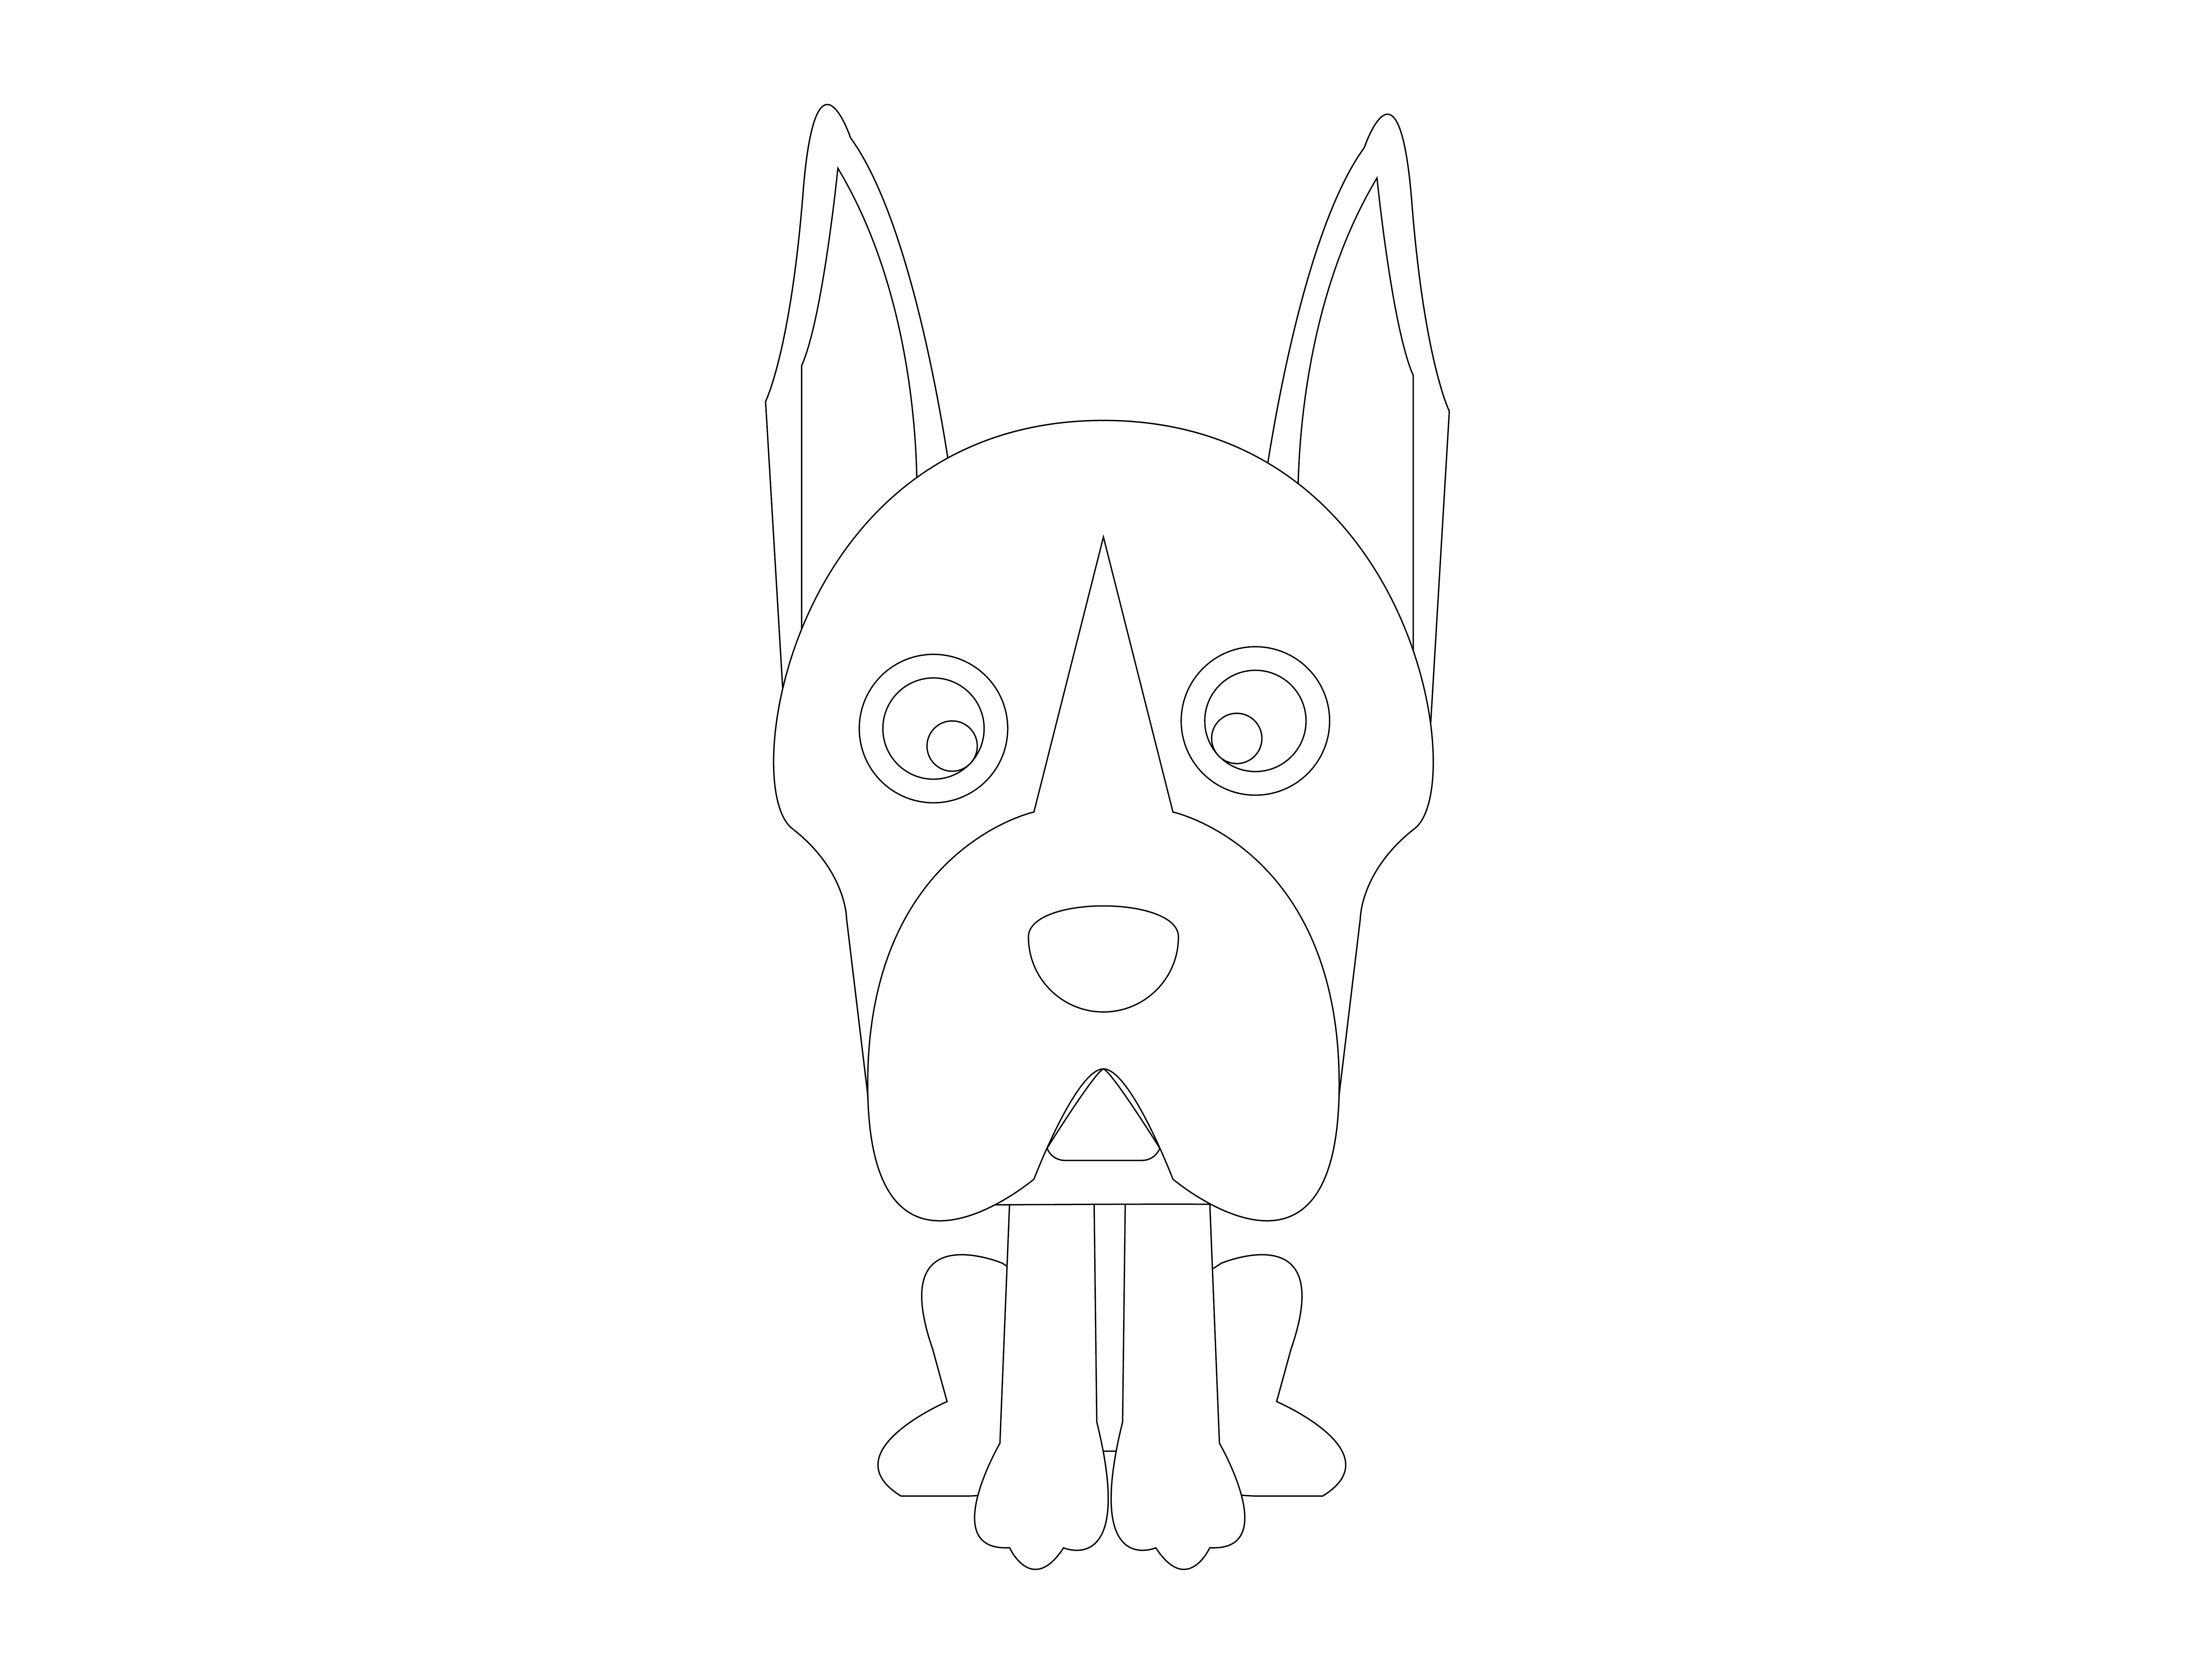 Dog Flat Design Vector Icon Silhouette Graphic By 1riaspengantin